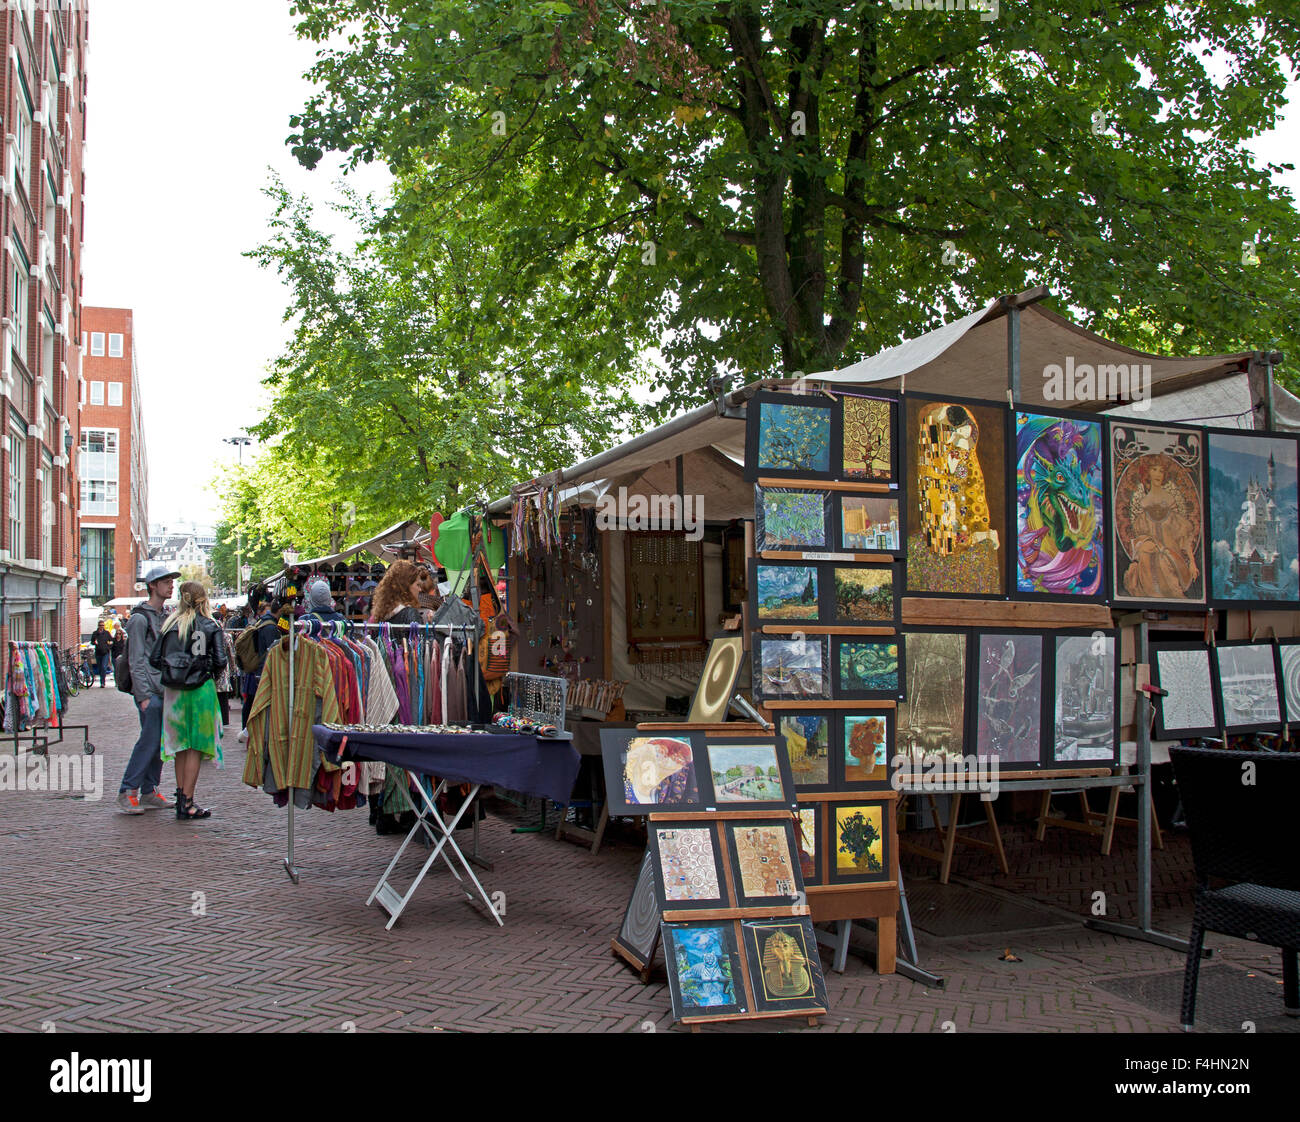 waterlooplein flea market stockfotos waterlooplein flea market bilder alamy. Black Bedroom Furniture Sets. Home Design Ideas